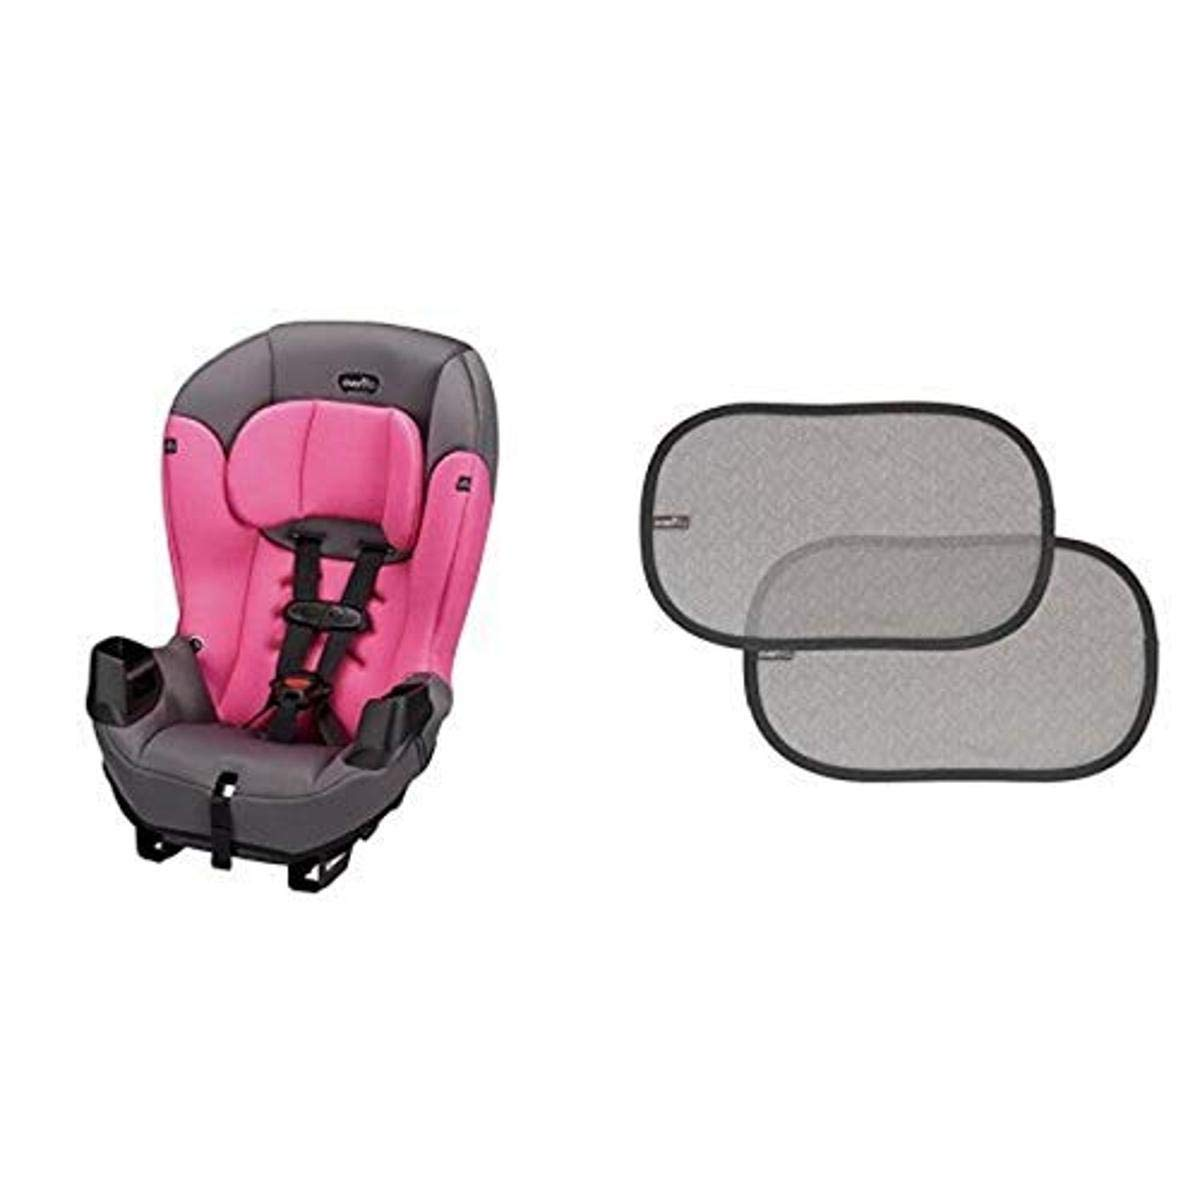 Evenflo Sonus Convertible Car Seat, Strawberry Pink with 2 Piece Car Window Cling Shades, Grey Chevron